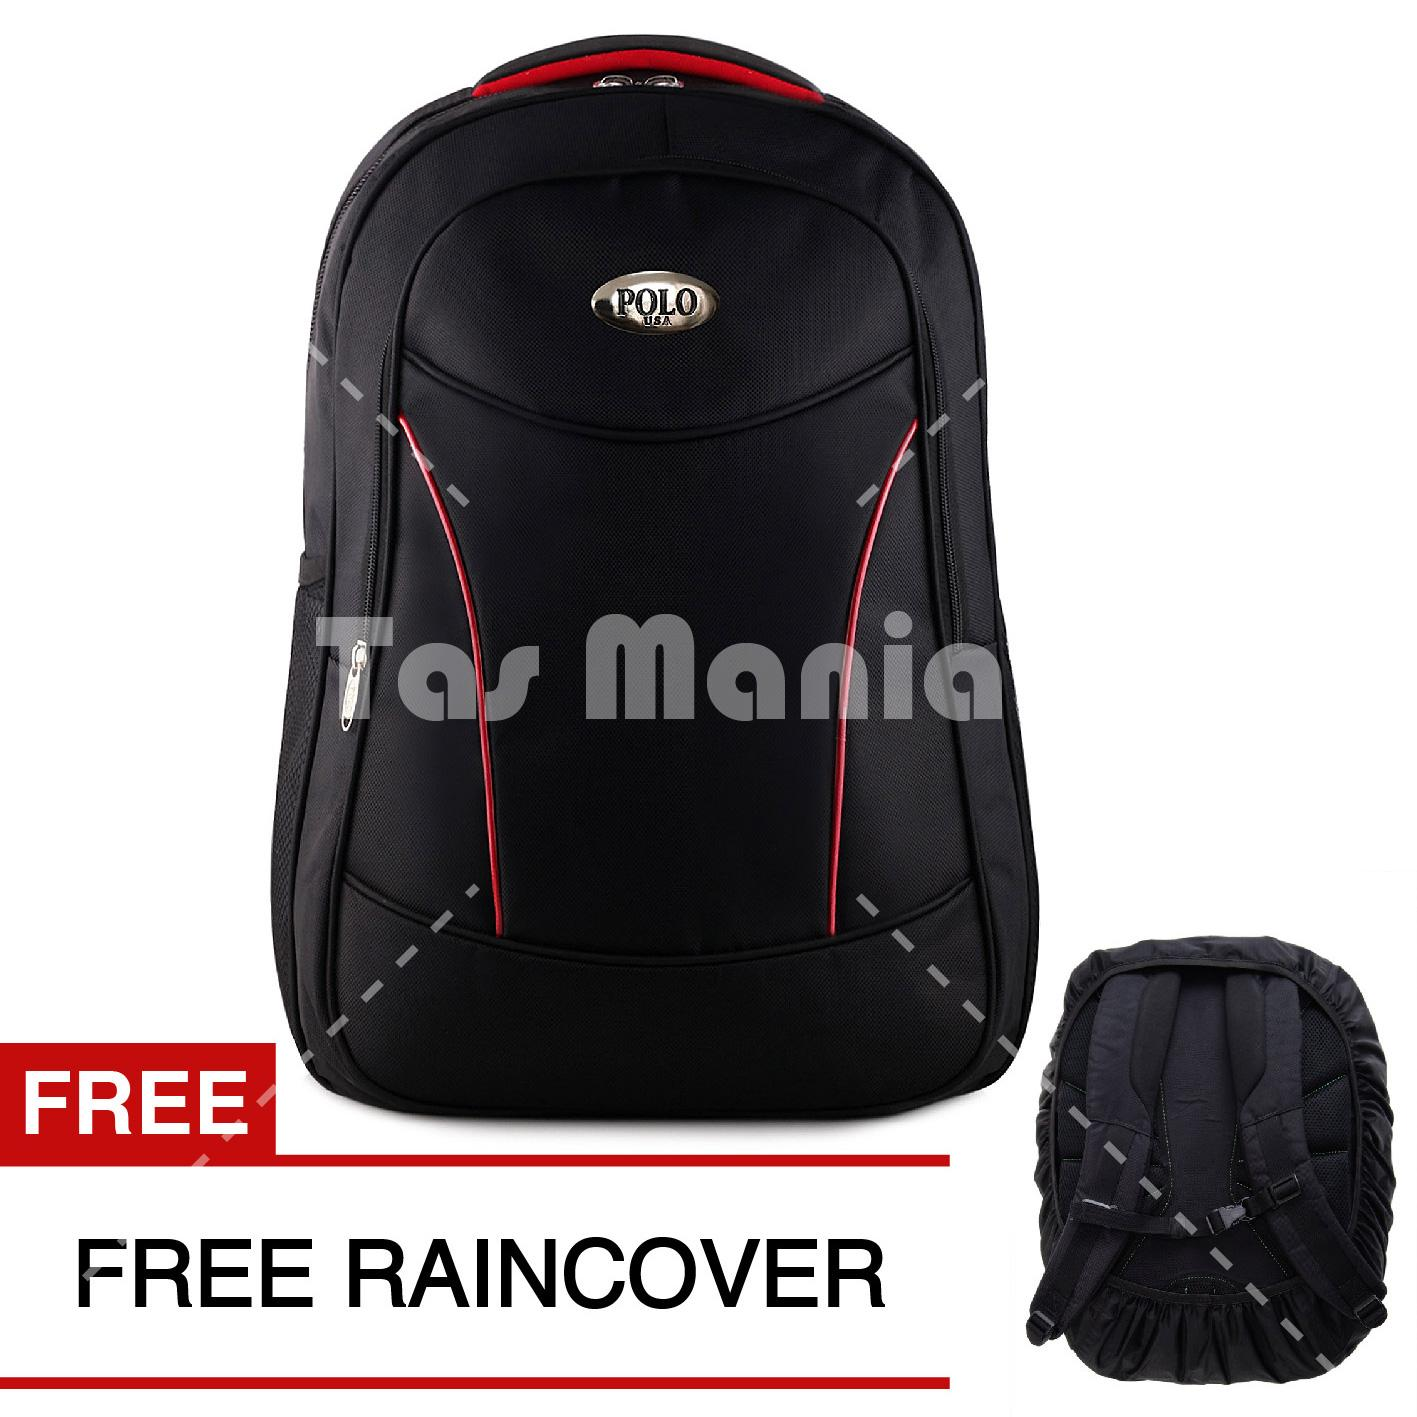 Tas Ransel Pria Polo USA Black Viper Dailypack Tas Laptop Backpack + Raincover FREE Promo Diskon Import Kulit Polo Classic Milano Real Polo Power Original Alto Eiger Bodypack Consina Xiaomi Asus Palazzo Polo Team Kuliah Termurah Terlaris Best Seller